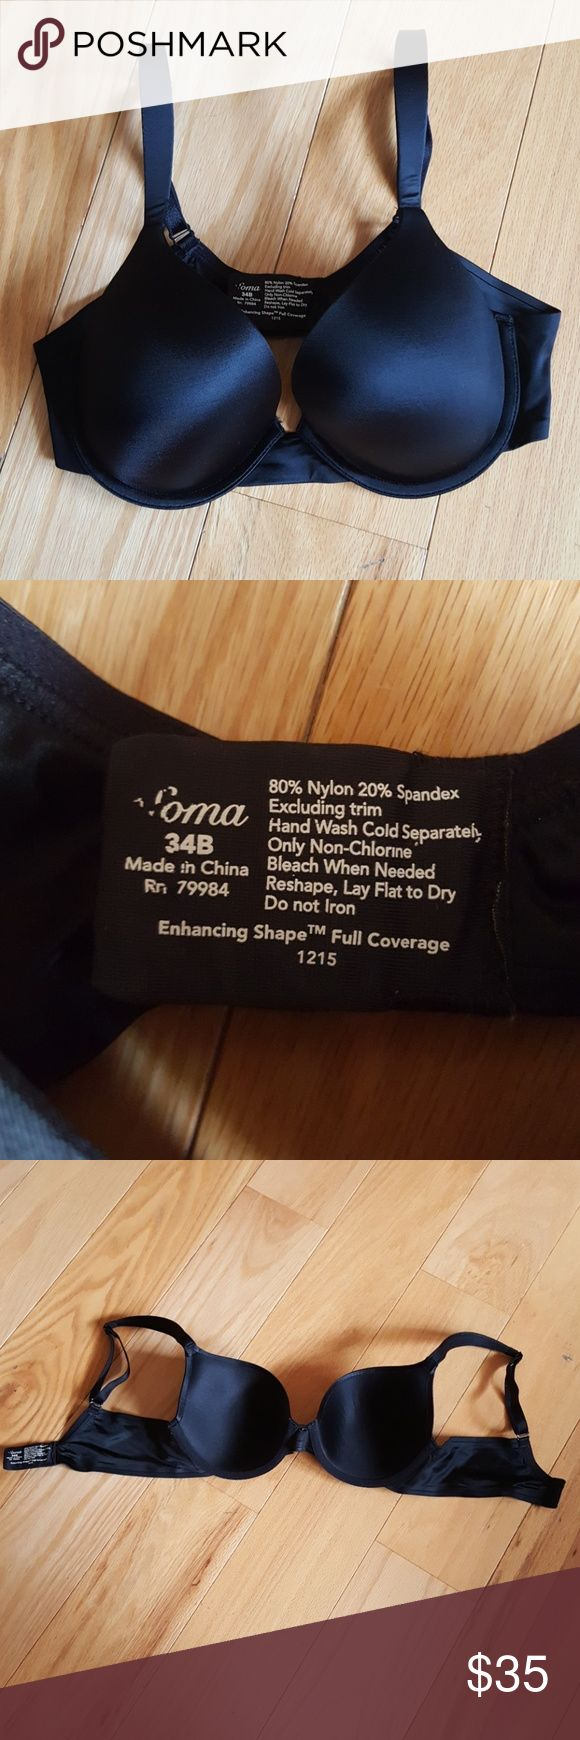 SALE Soma Enhancing Shape Full Coverage Bra > From A Smoke and Pet Free Home  > No imperfections  > Hand wash & Hang to dry > Eliminates gaps at the neckline with top shaping pad. > Restores natural shape. > Contour underwire cups provide lift and support. > Offers a solution for gaping neckline. > T-shirt bra provides a smooth appearance under clothing. > Comfort straps relieve shoulder discomfort and help prevent dig in. > 3 Cushioned hook & eye closure for comfort. > 80% nylon, 20%…